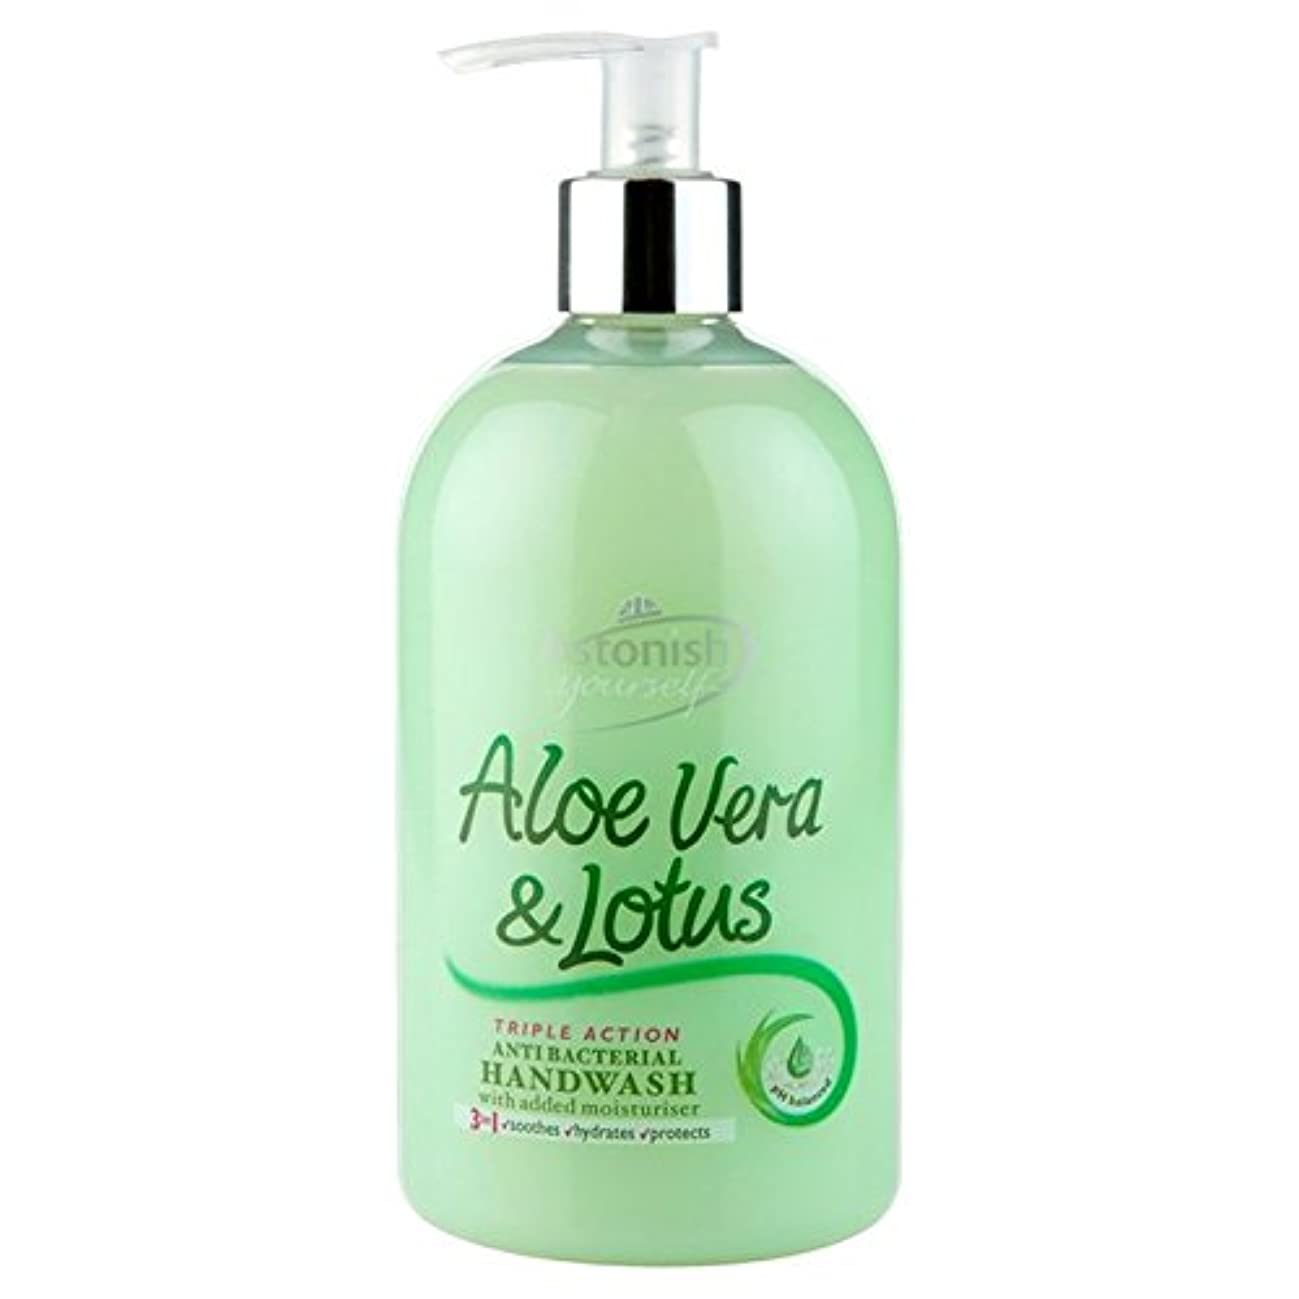 Astonish Aloe Vera & Lotus Anti Bacterial Hand Wash 500ml (Pack of 2) - (Astonish) アロエベラ&蓮抗細菌手洗いの500ミリリットル (x2...